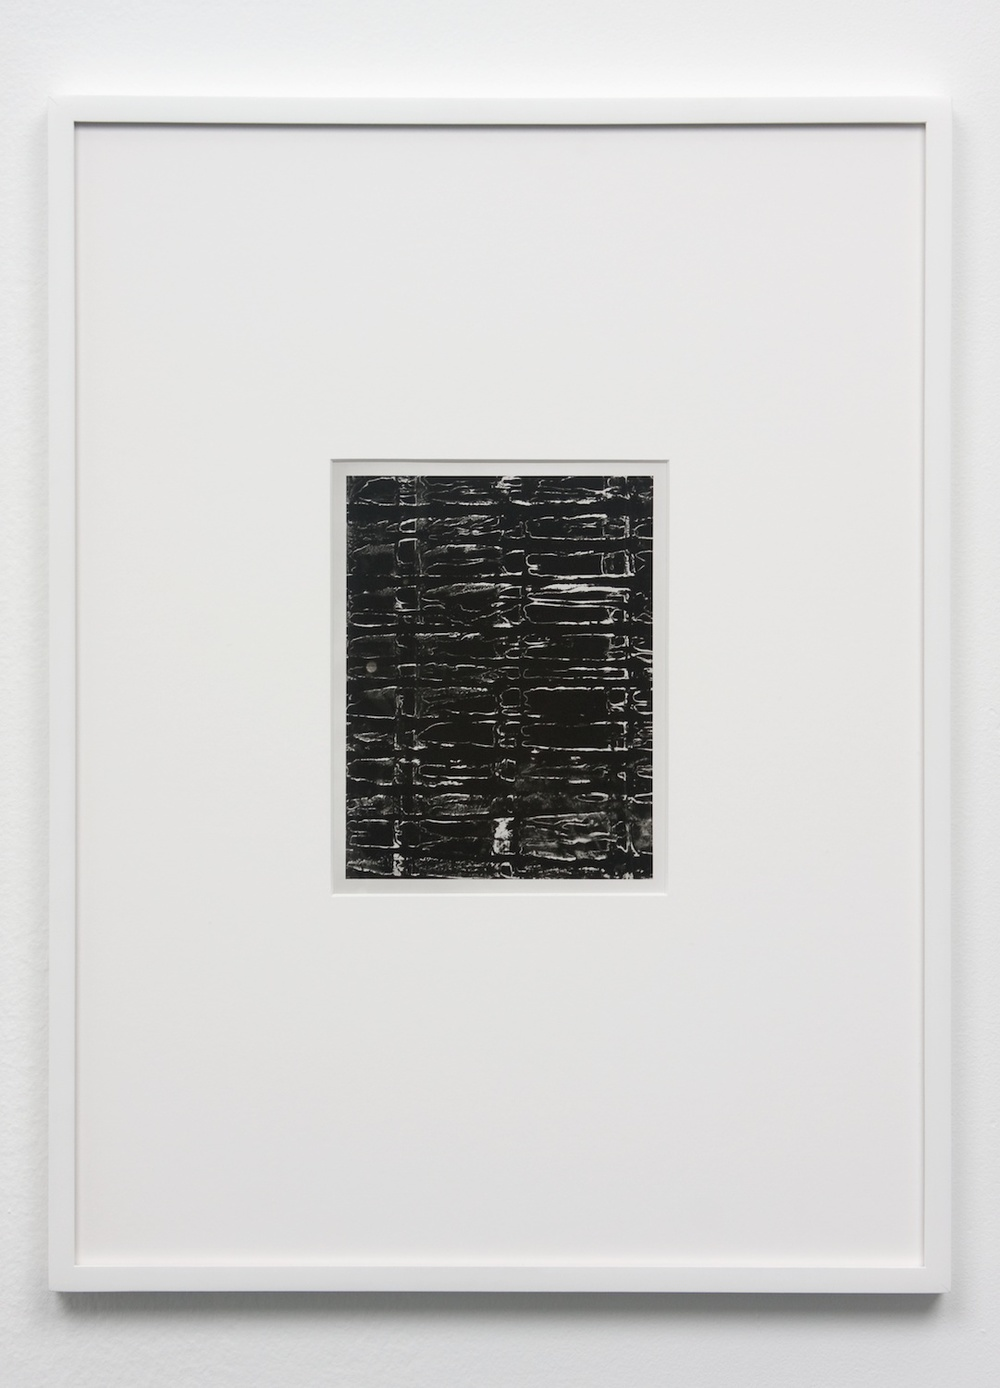 Anthony Pearson  Untitled (Solarization)  2010 Framed solarized silver gelatin photograph 17 ½h x 13 ¼w in AP236